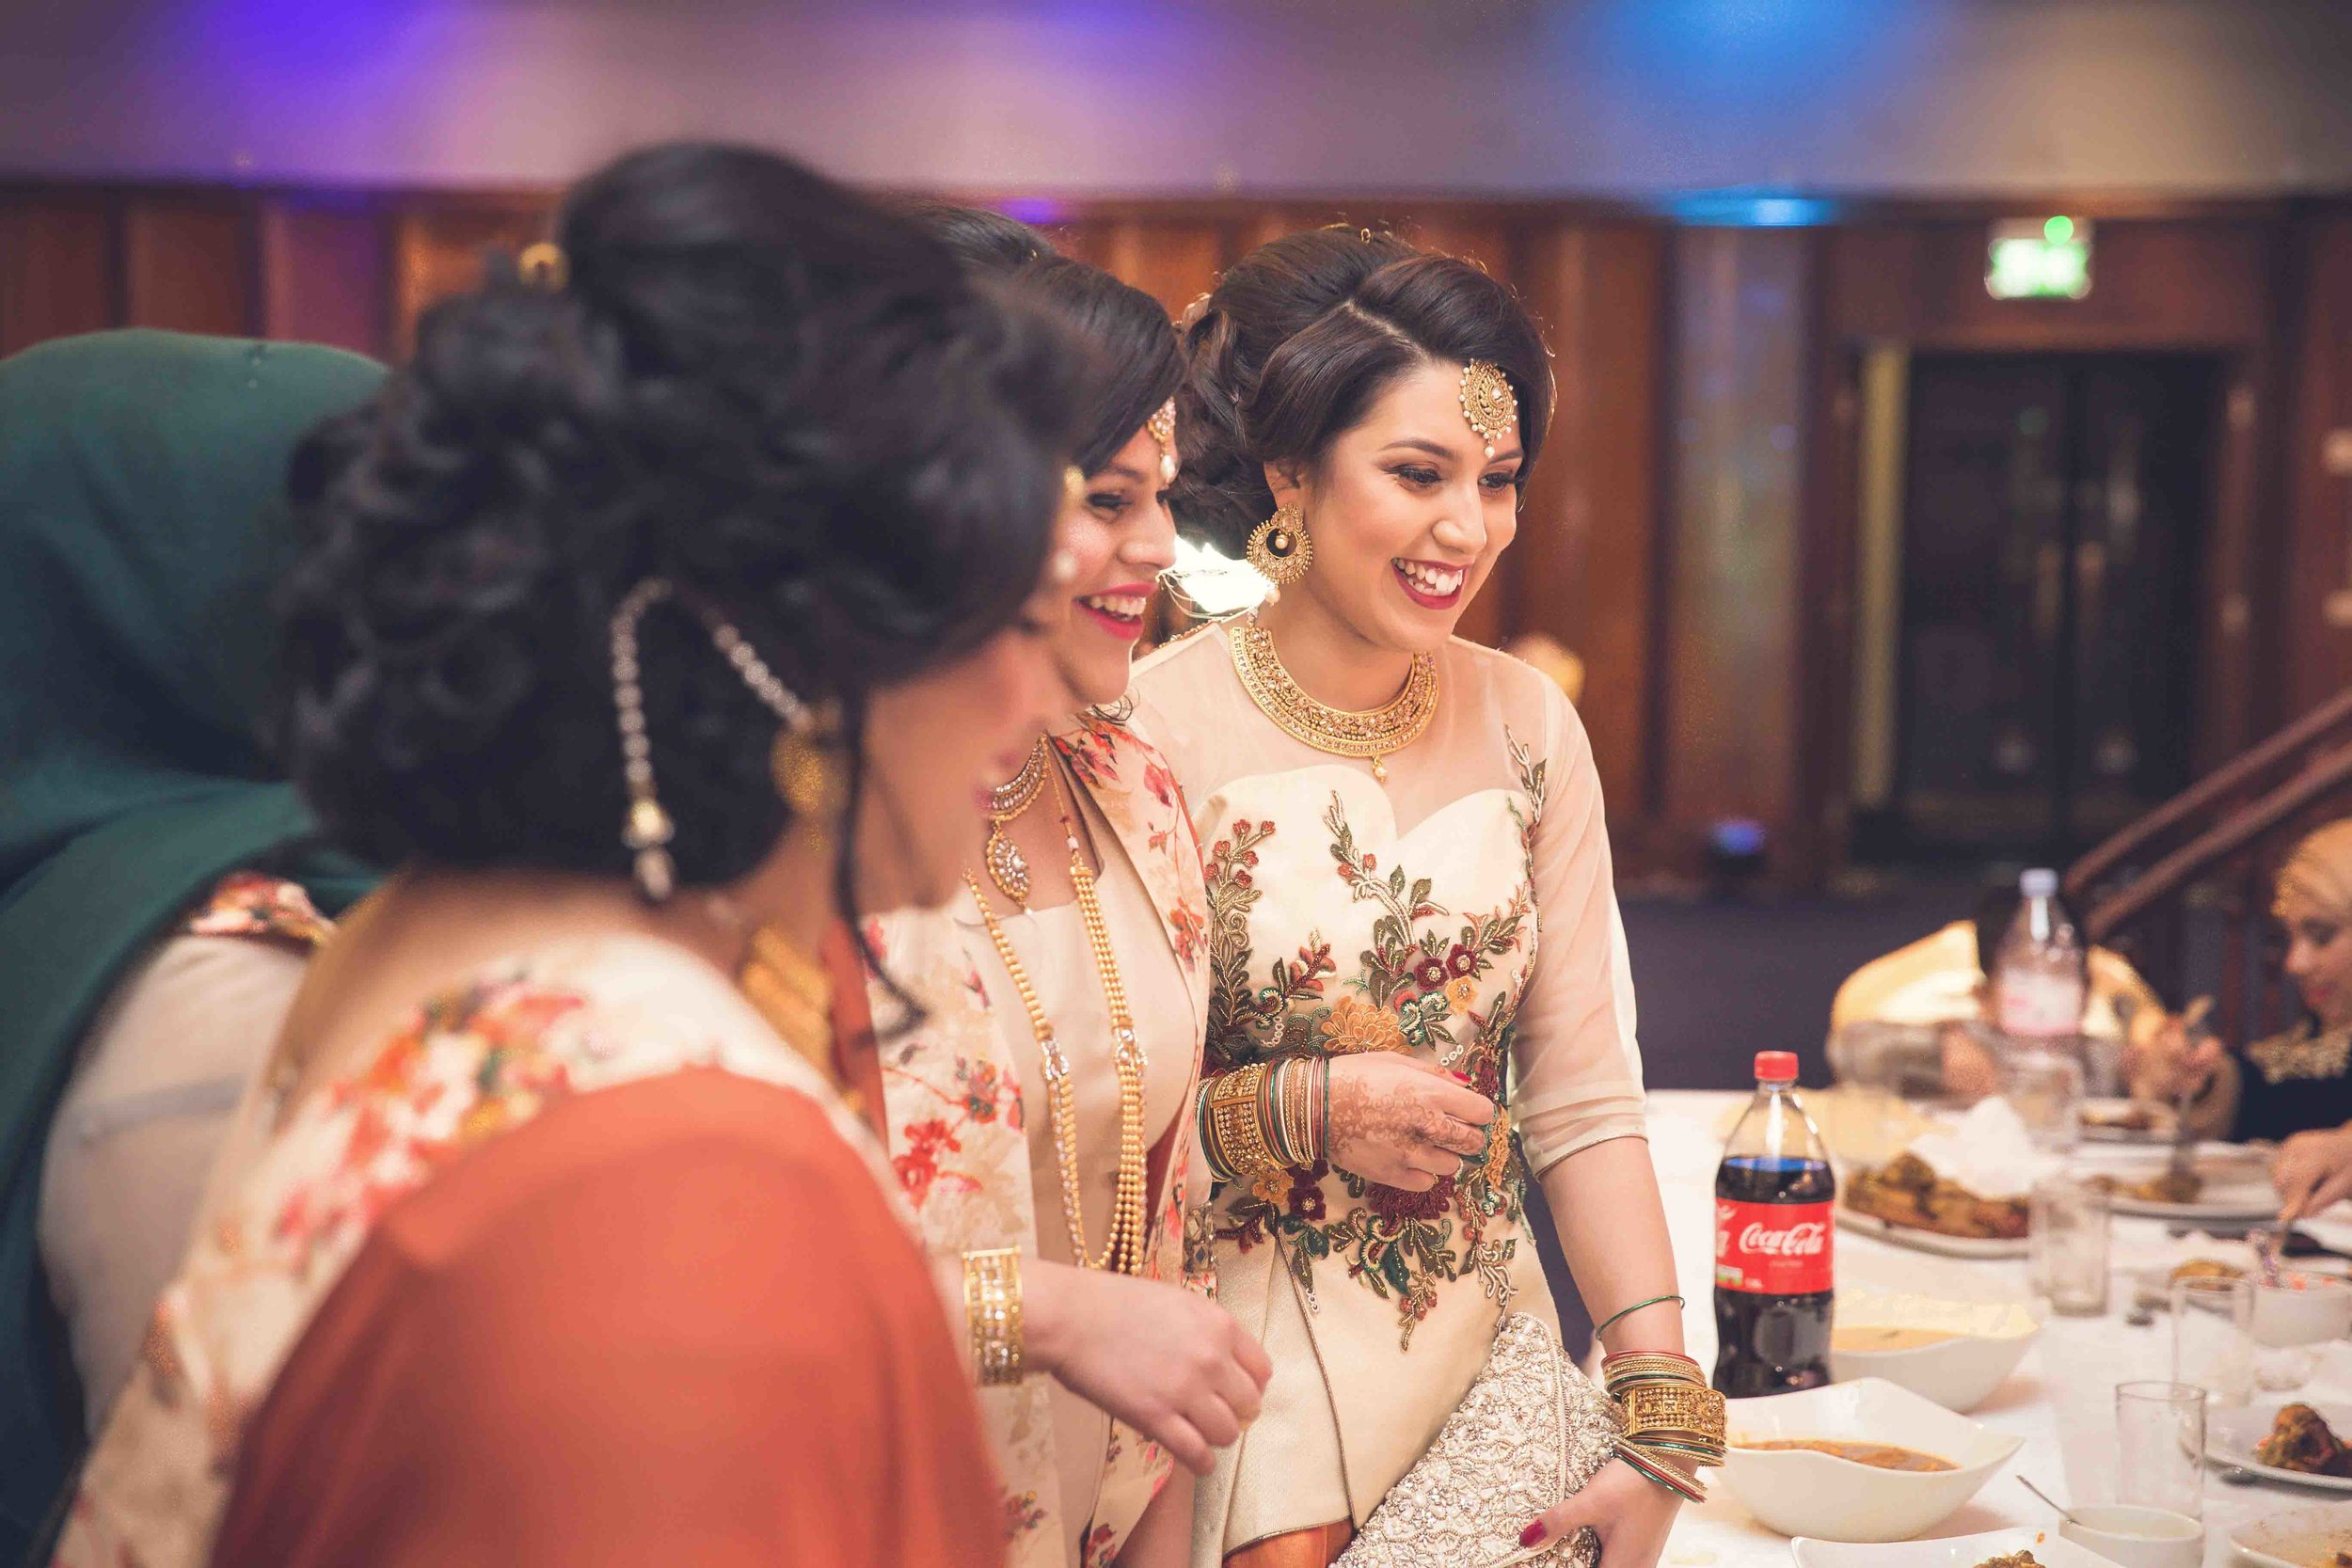 Asian Wedding Photographer Opu Sultan Photography portsmouth Scotland Edinburgh Glasgow London Manchester Liverpool Birmingham Wedding Photos prewed shoot Luko & Rujina Blog-20.jpg